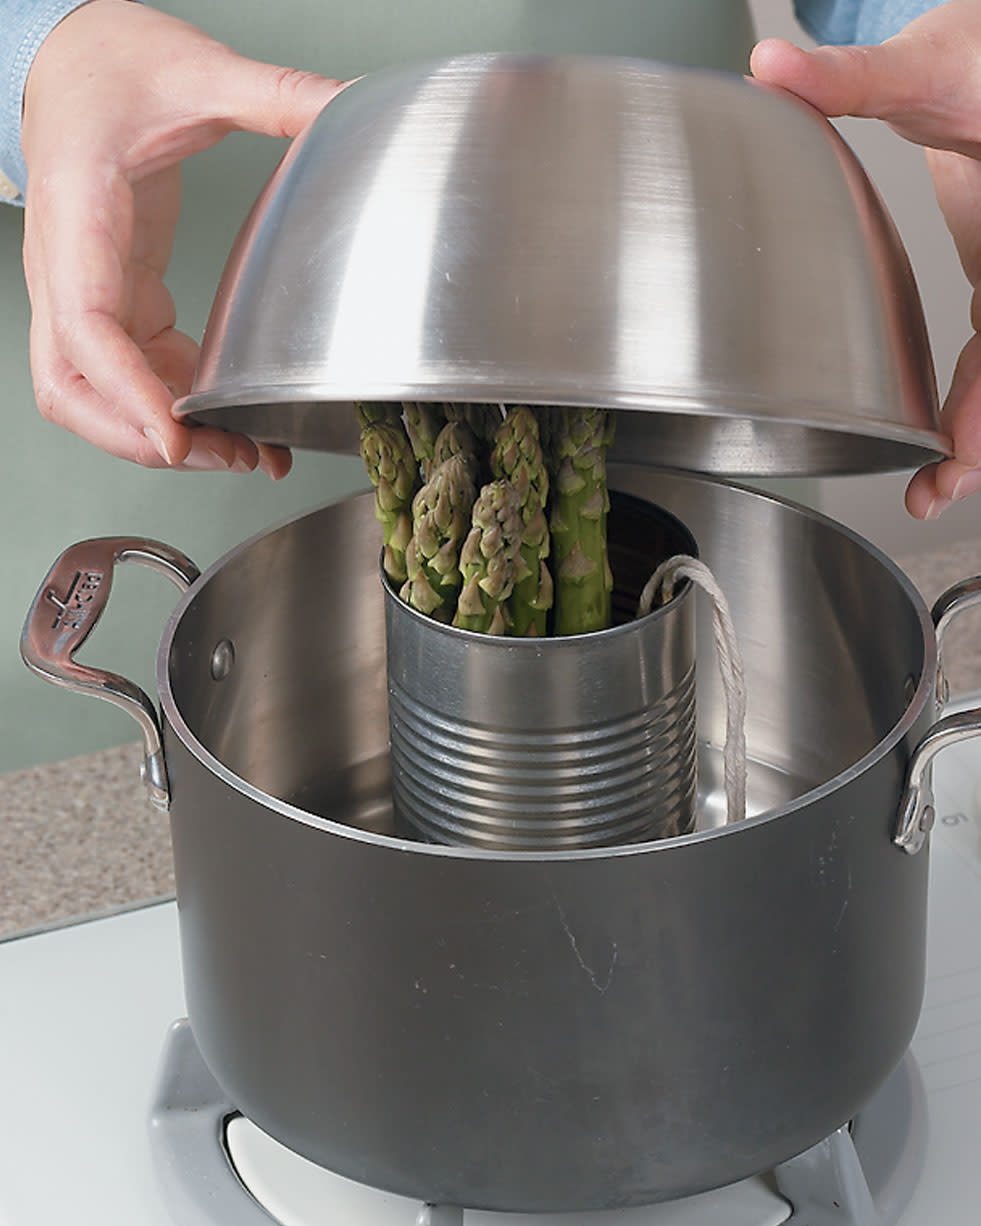 Tips-How-to-Steam-Asparagus-without-Steamer-Basket